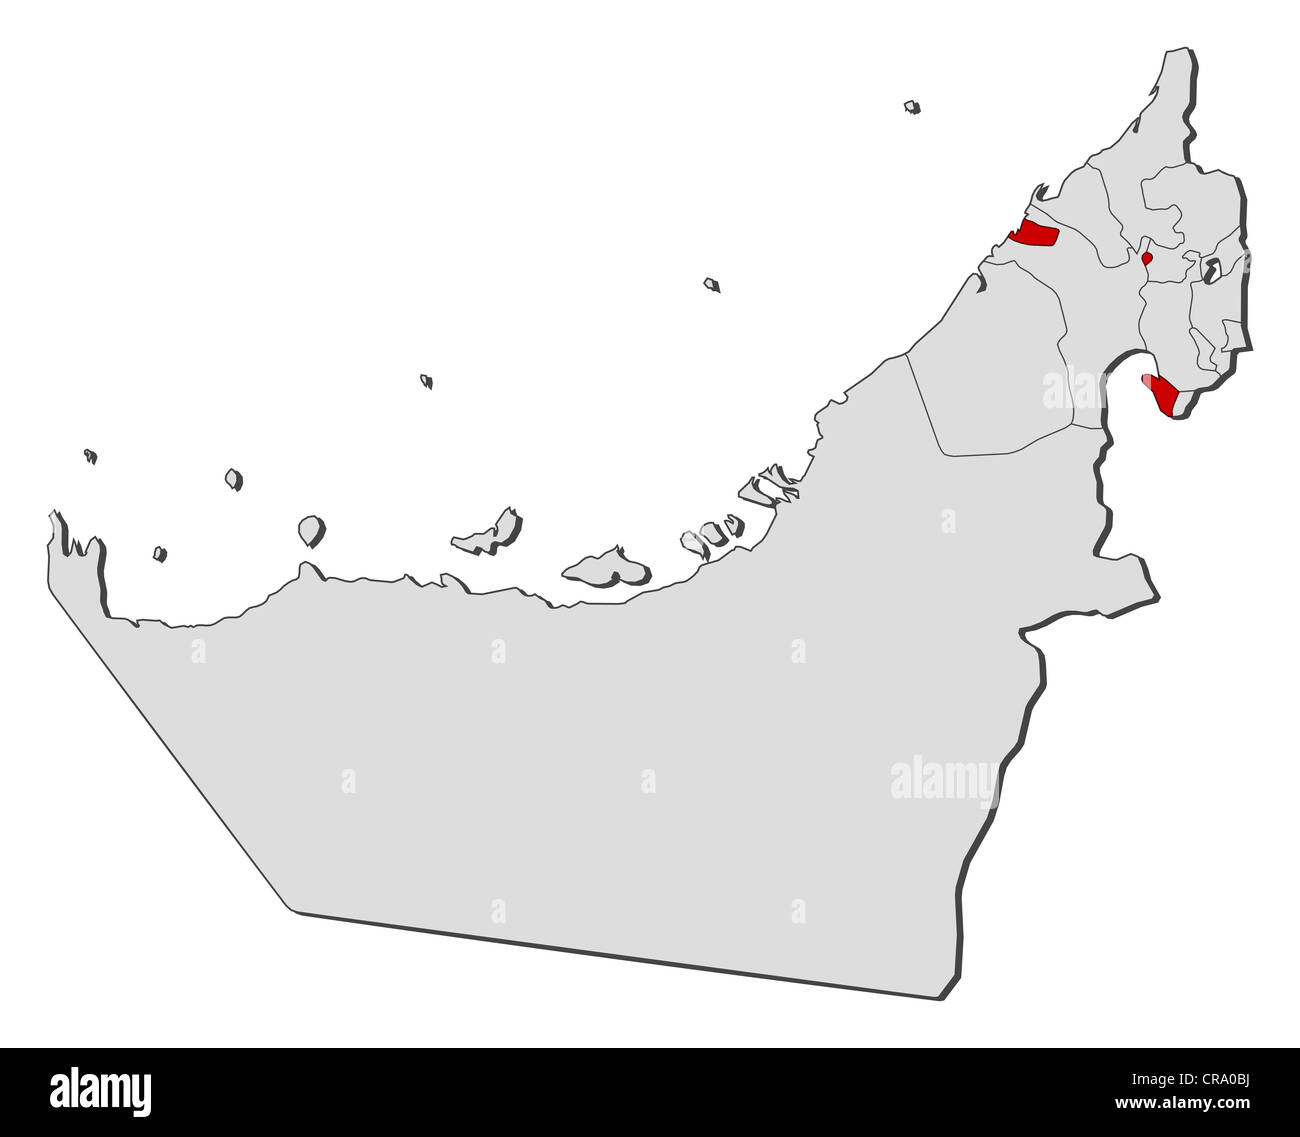 Political map of the United Arab Emirates with the several emirates where Ajman is highlighted. - Stock Image